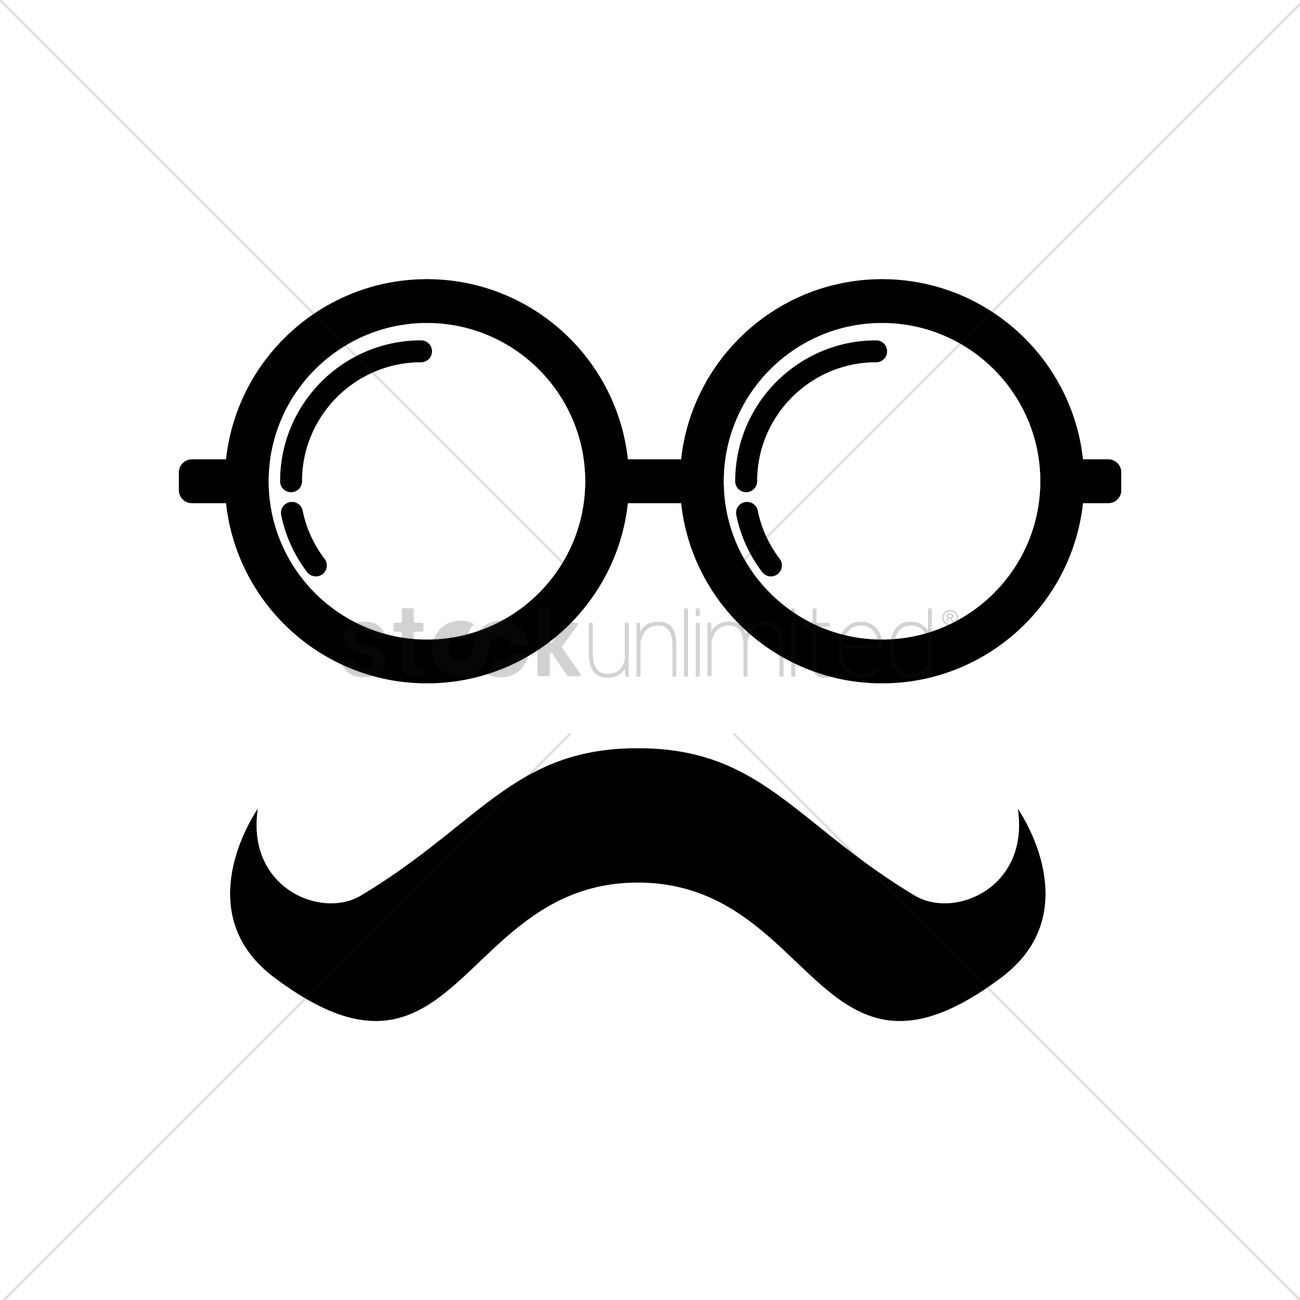 spectacles and mustache design vector image 2017003 stockunlimitedspectacles and mustache design vector graphic